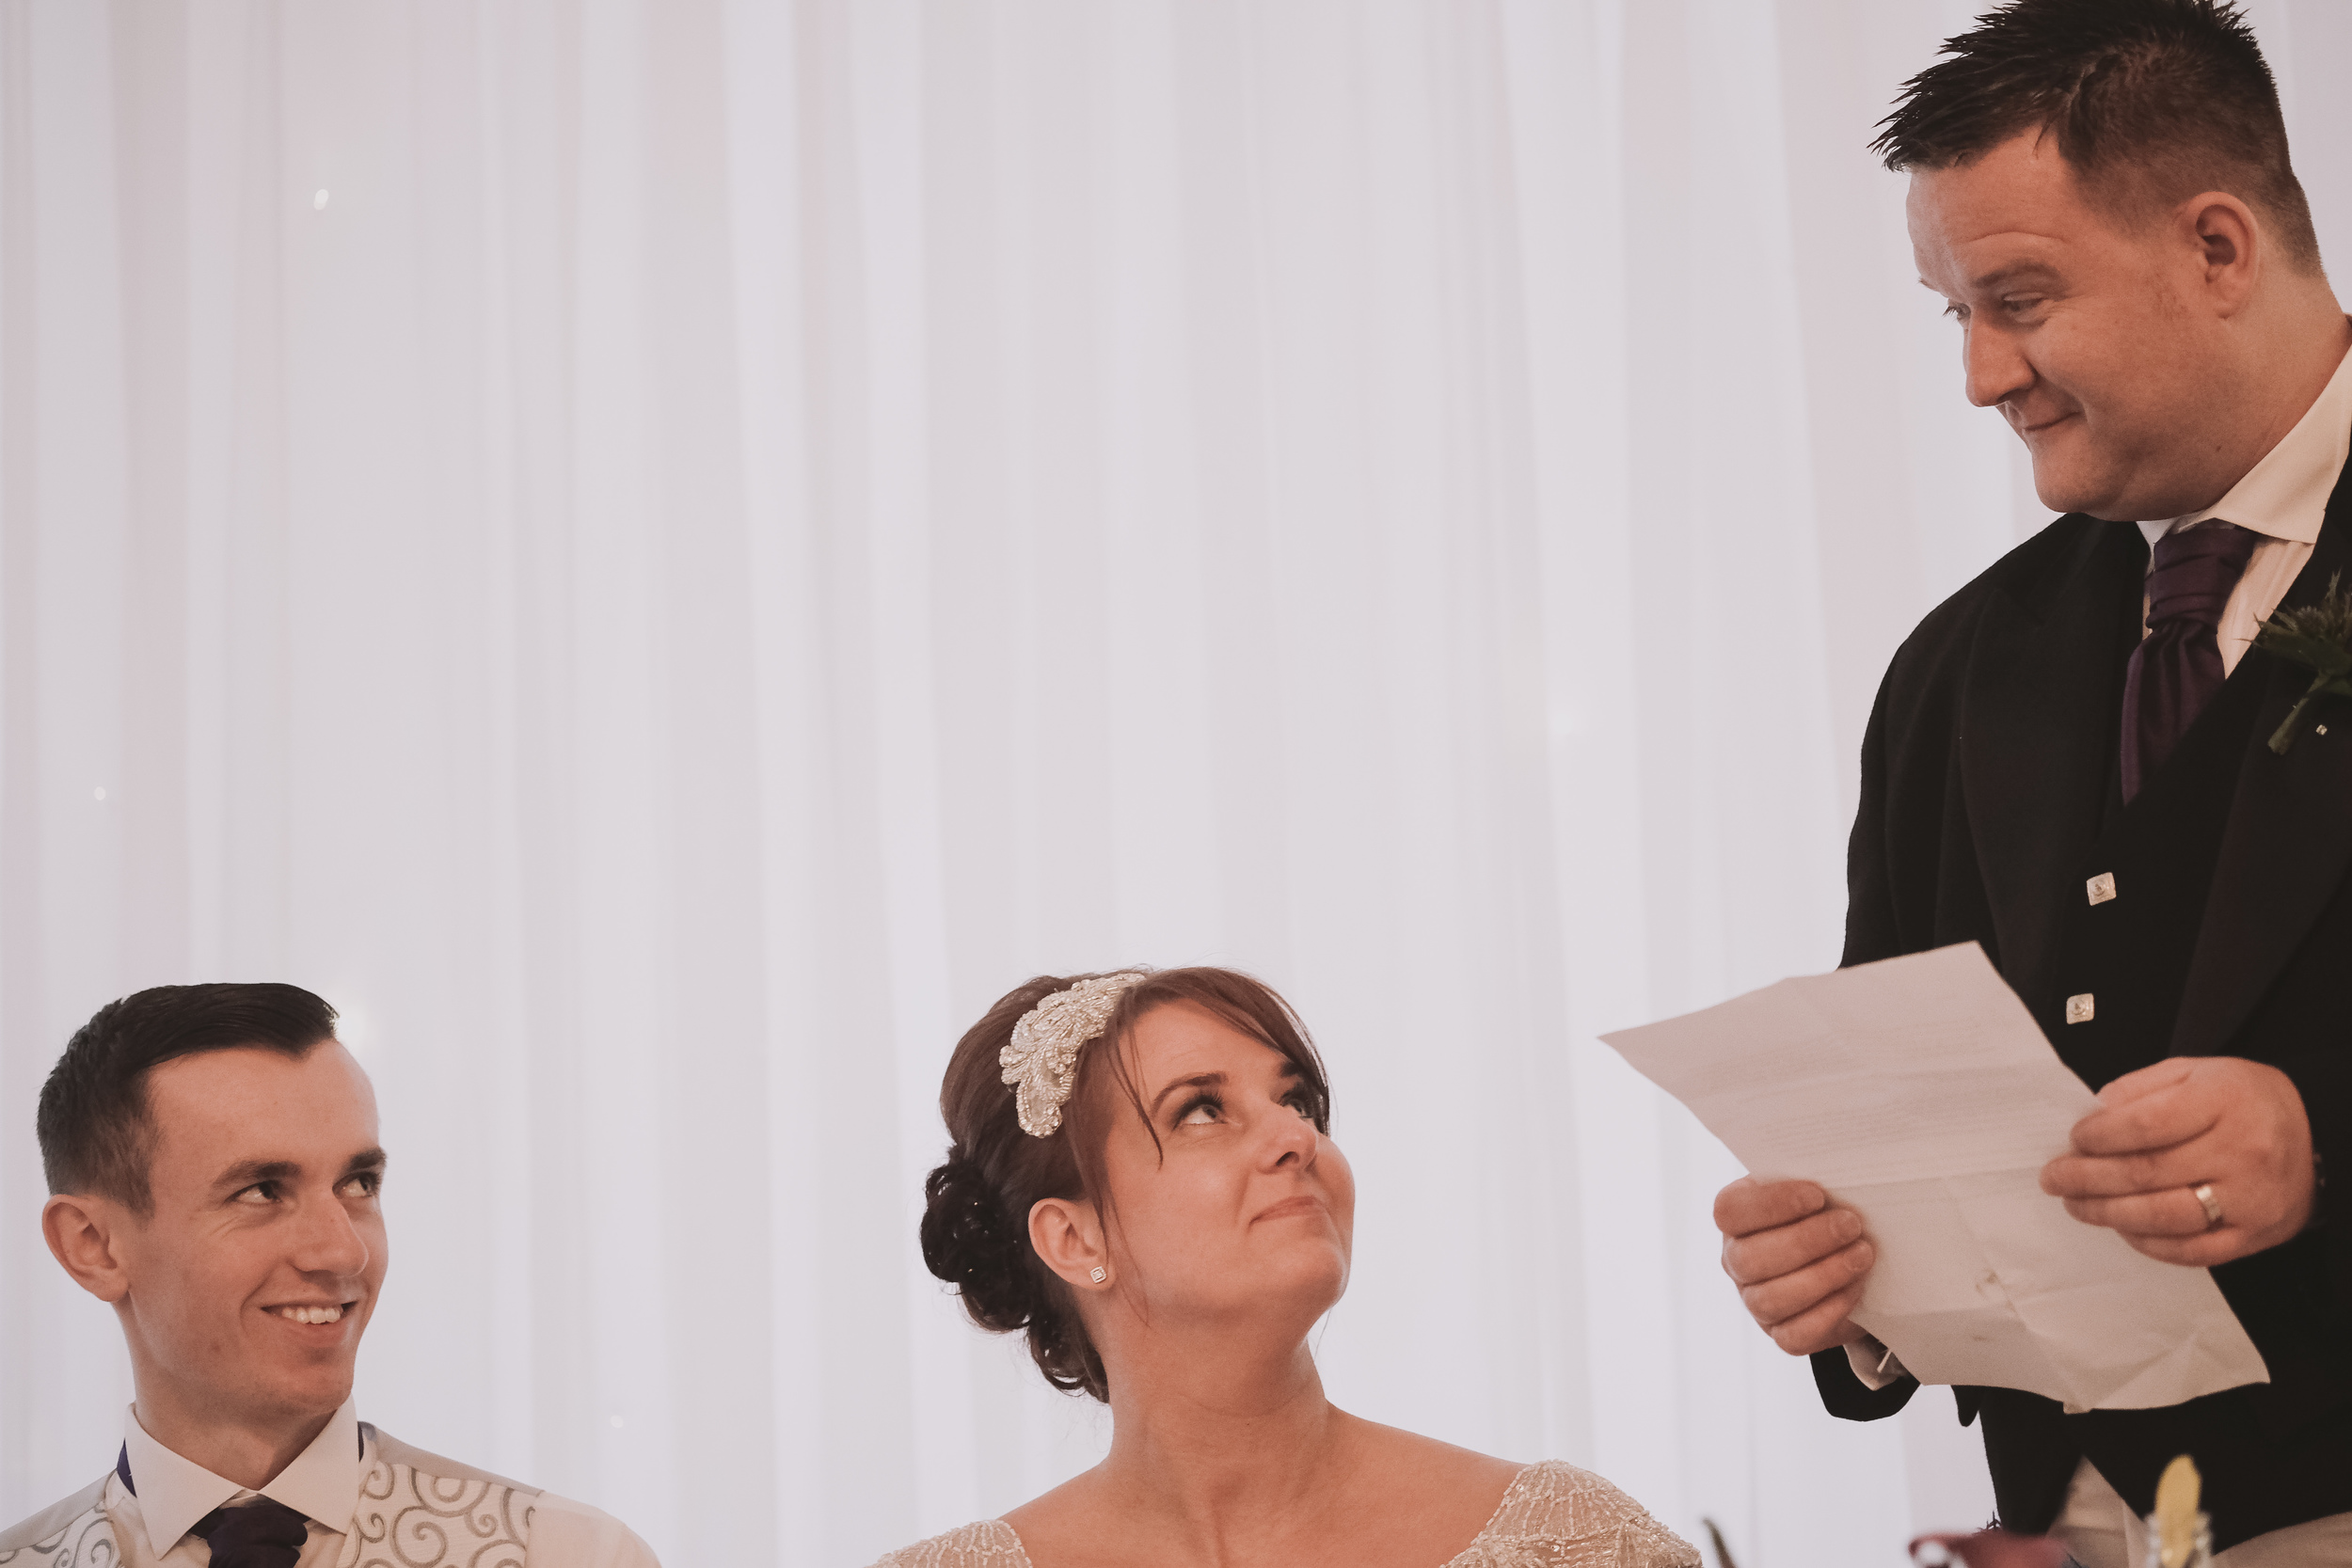 Newcastle Wedding Photographer // Groom eye contact with bride's son during speech